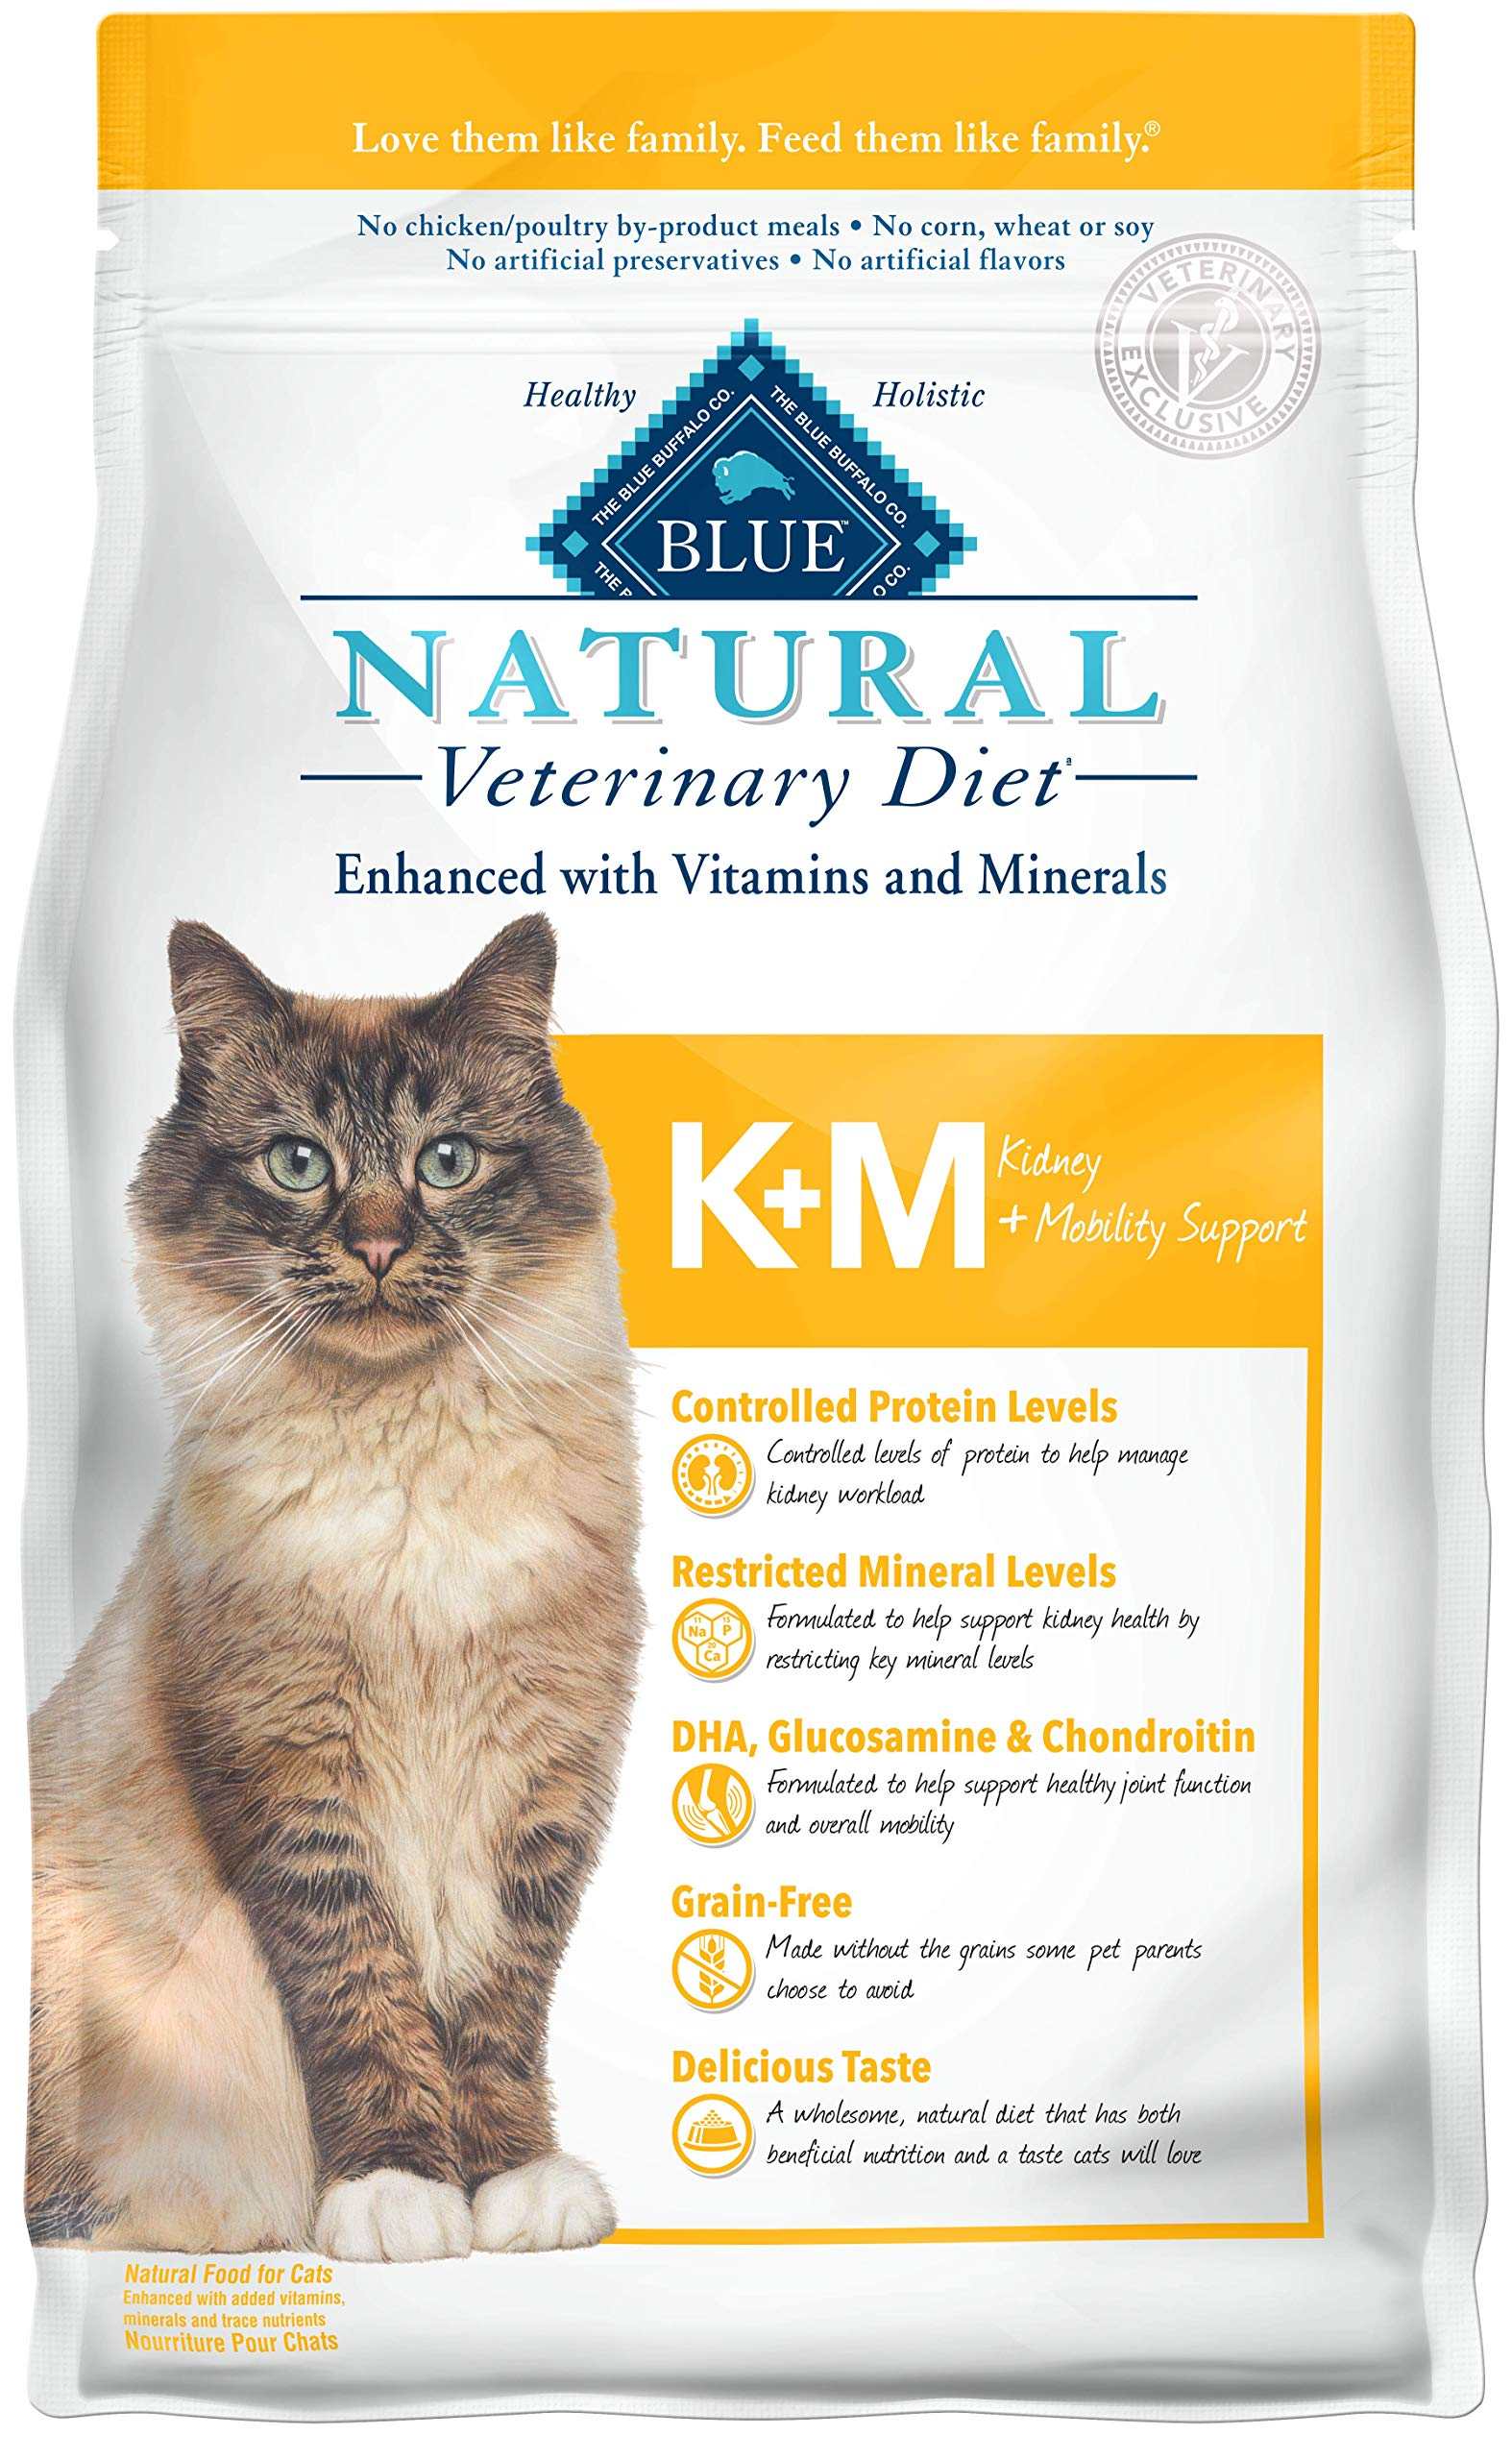 Blue Buffalo Natural Veterinary Diet Kidney + Mobility Support for Cats 7lbs by Blue Buffalo Natural Veterinary Diet